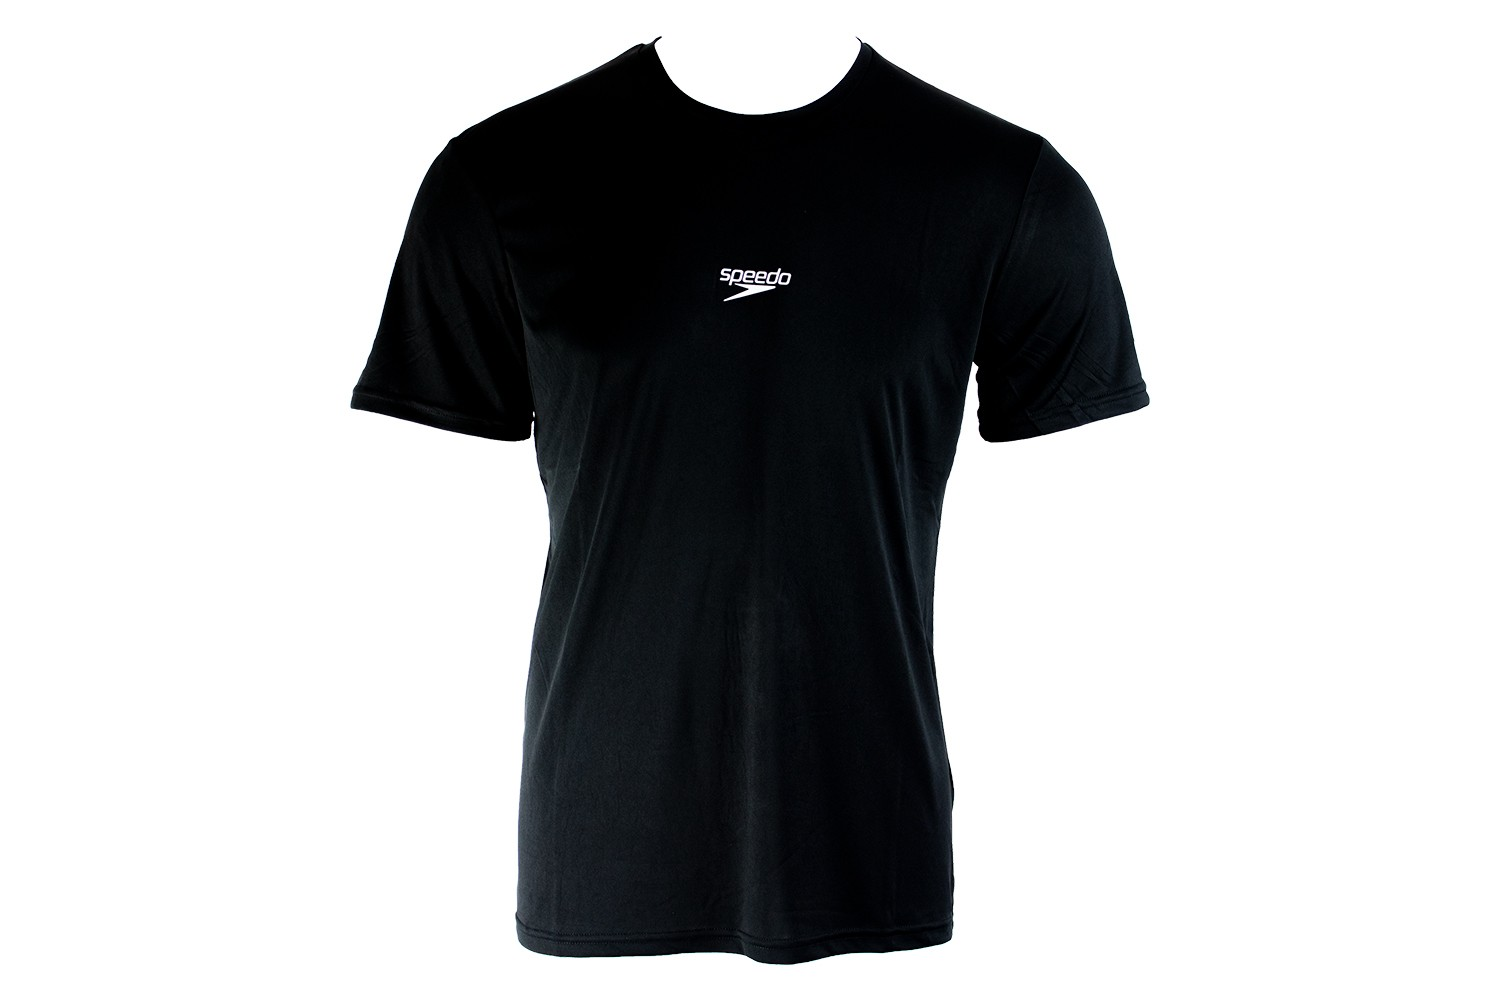 Camiseta Básica Corrida Speedo Interlock Uv50 Preto Masculin